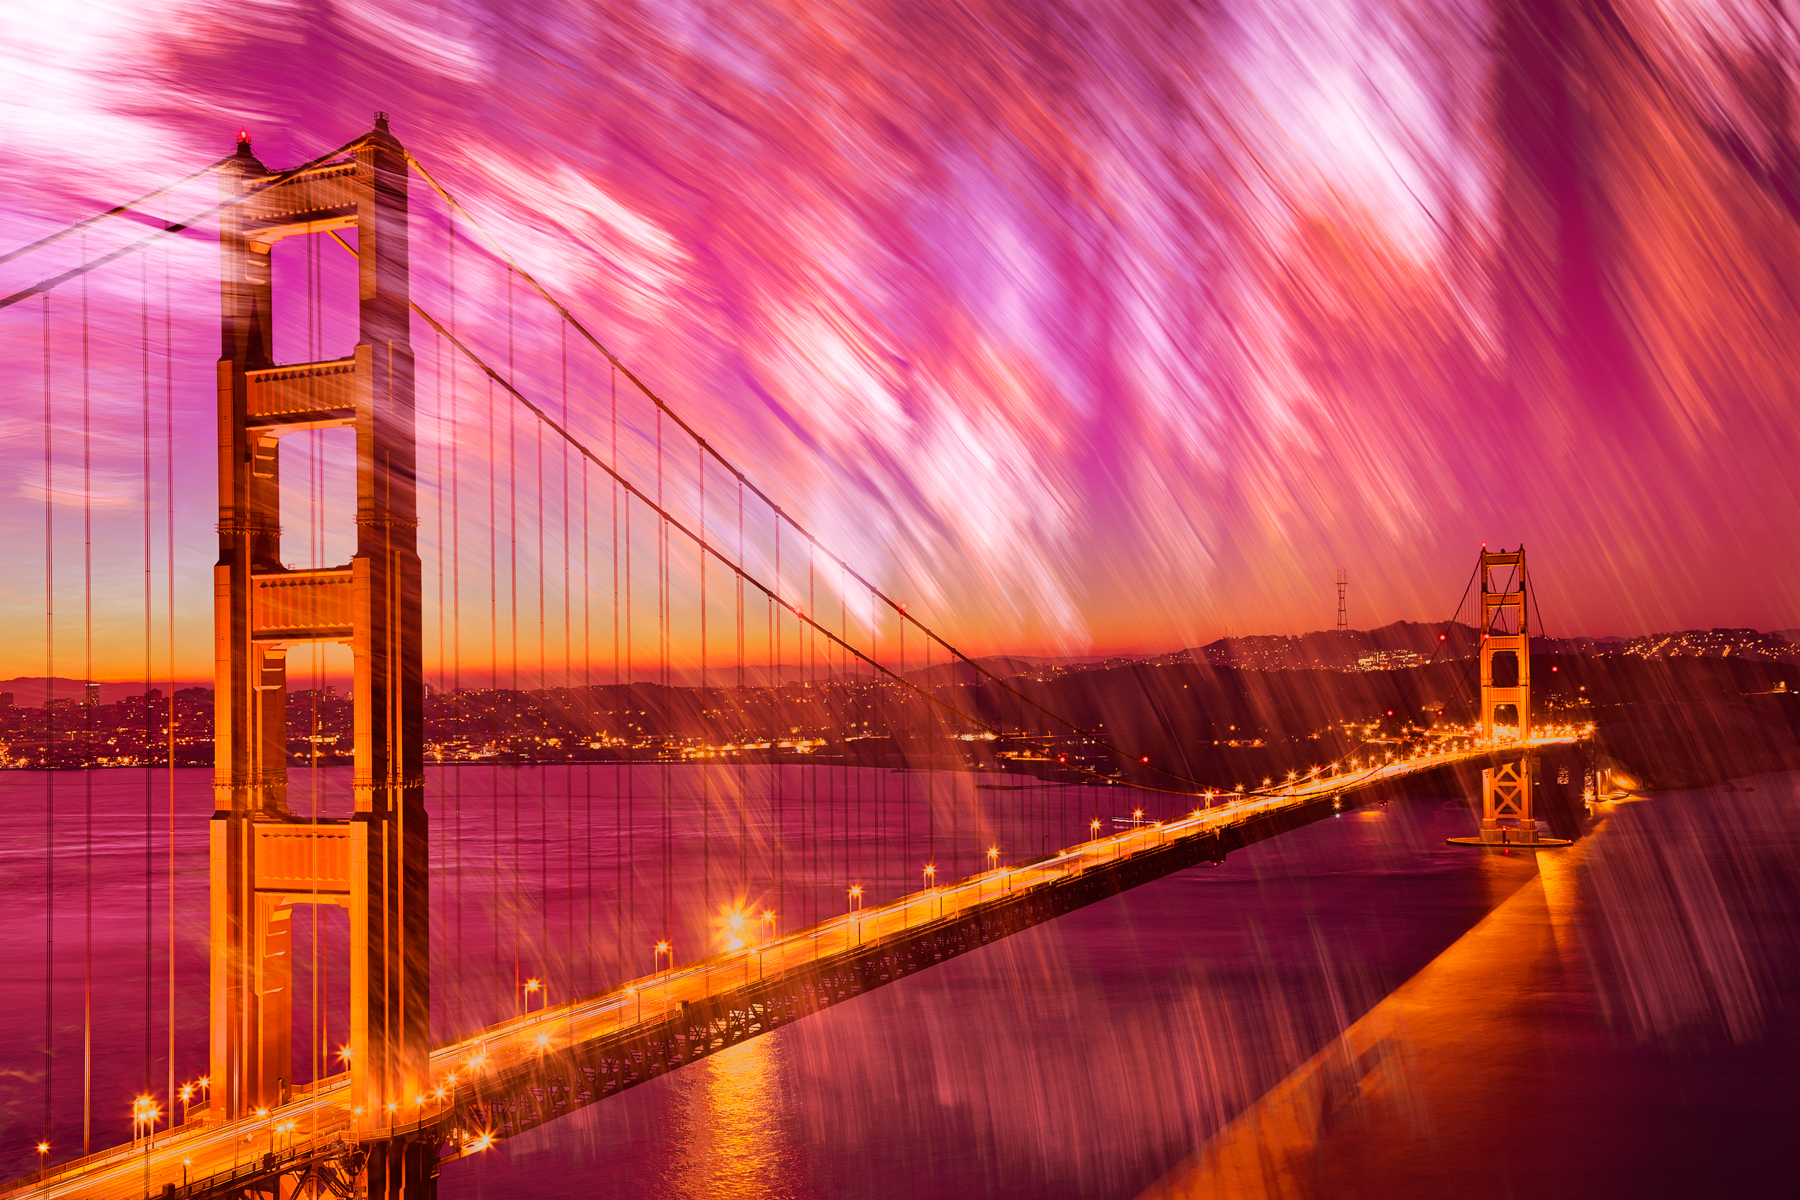 Passion Gate Bridge, Abstract, Range, Scenery, Scene, HQ Photo